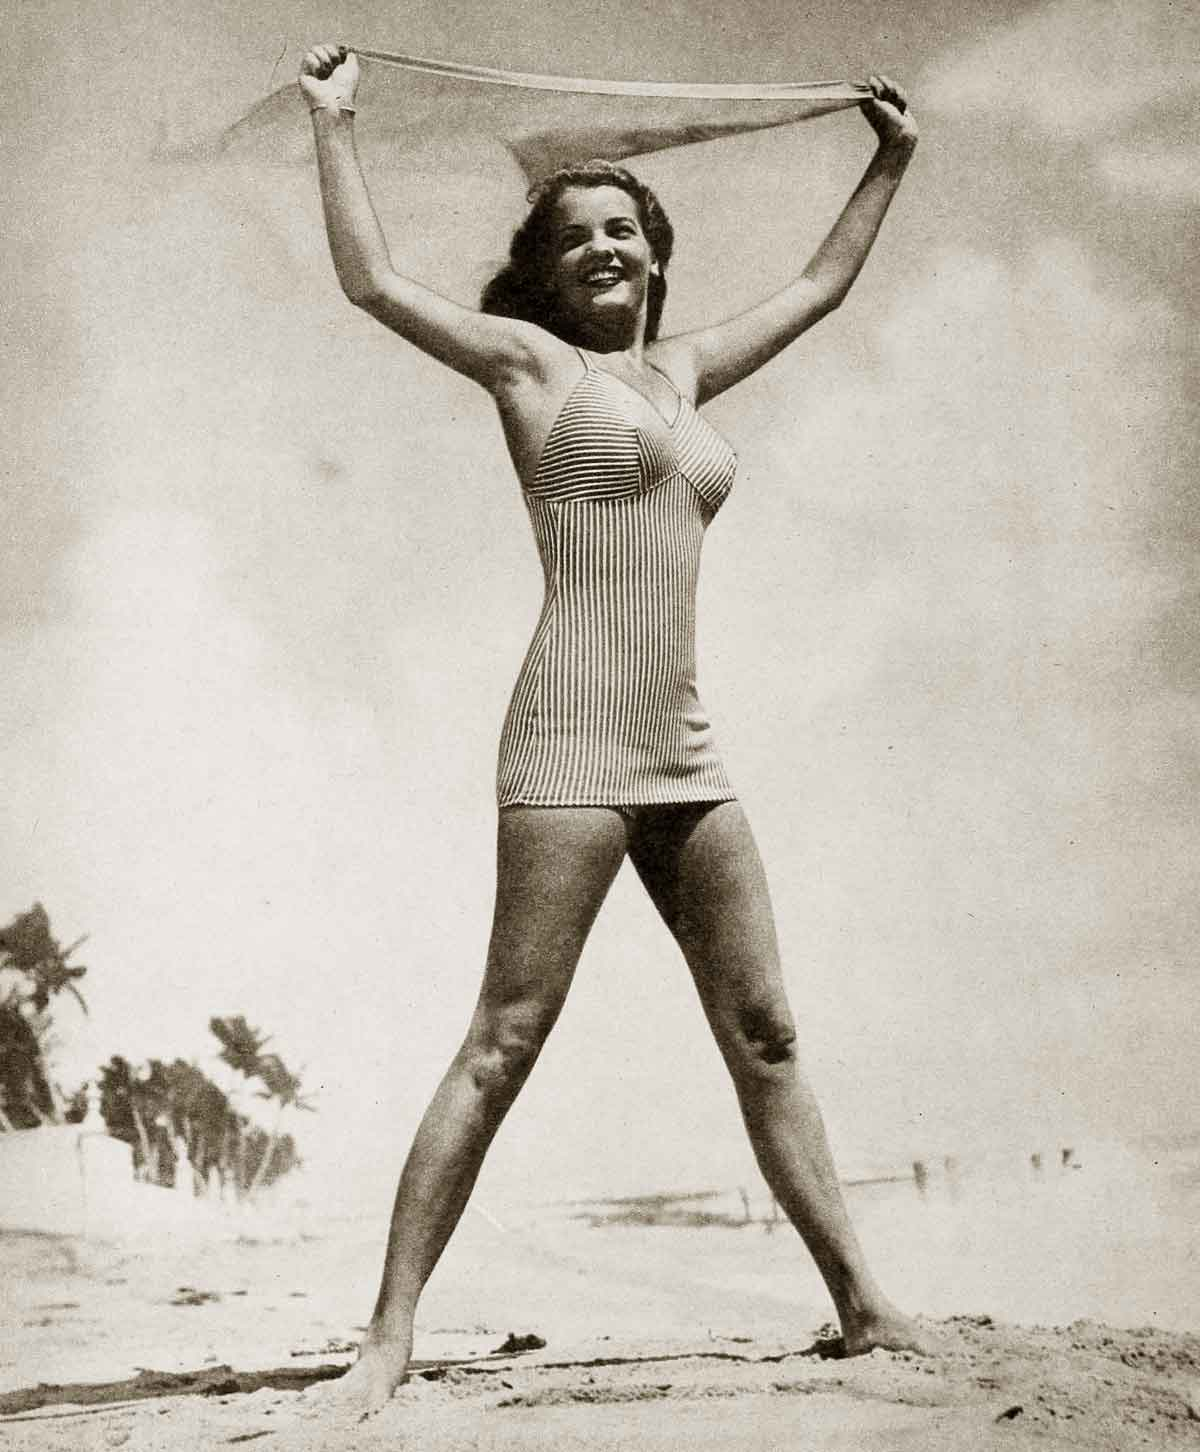 1940s-Fashion---Summer-Frock-and-Swimsuit-Styles-6